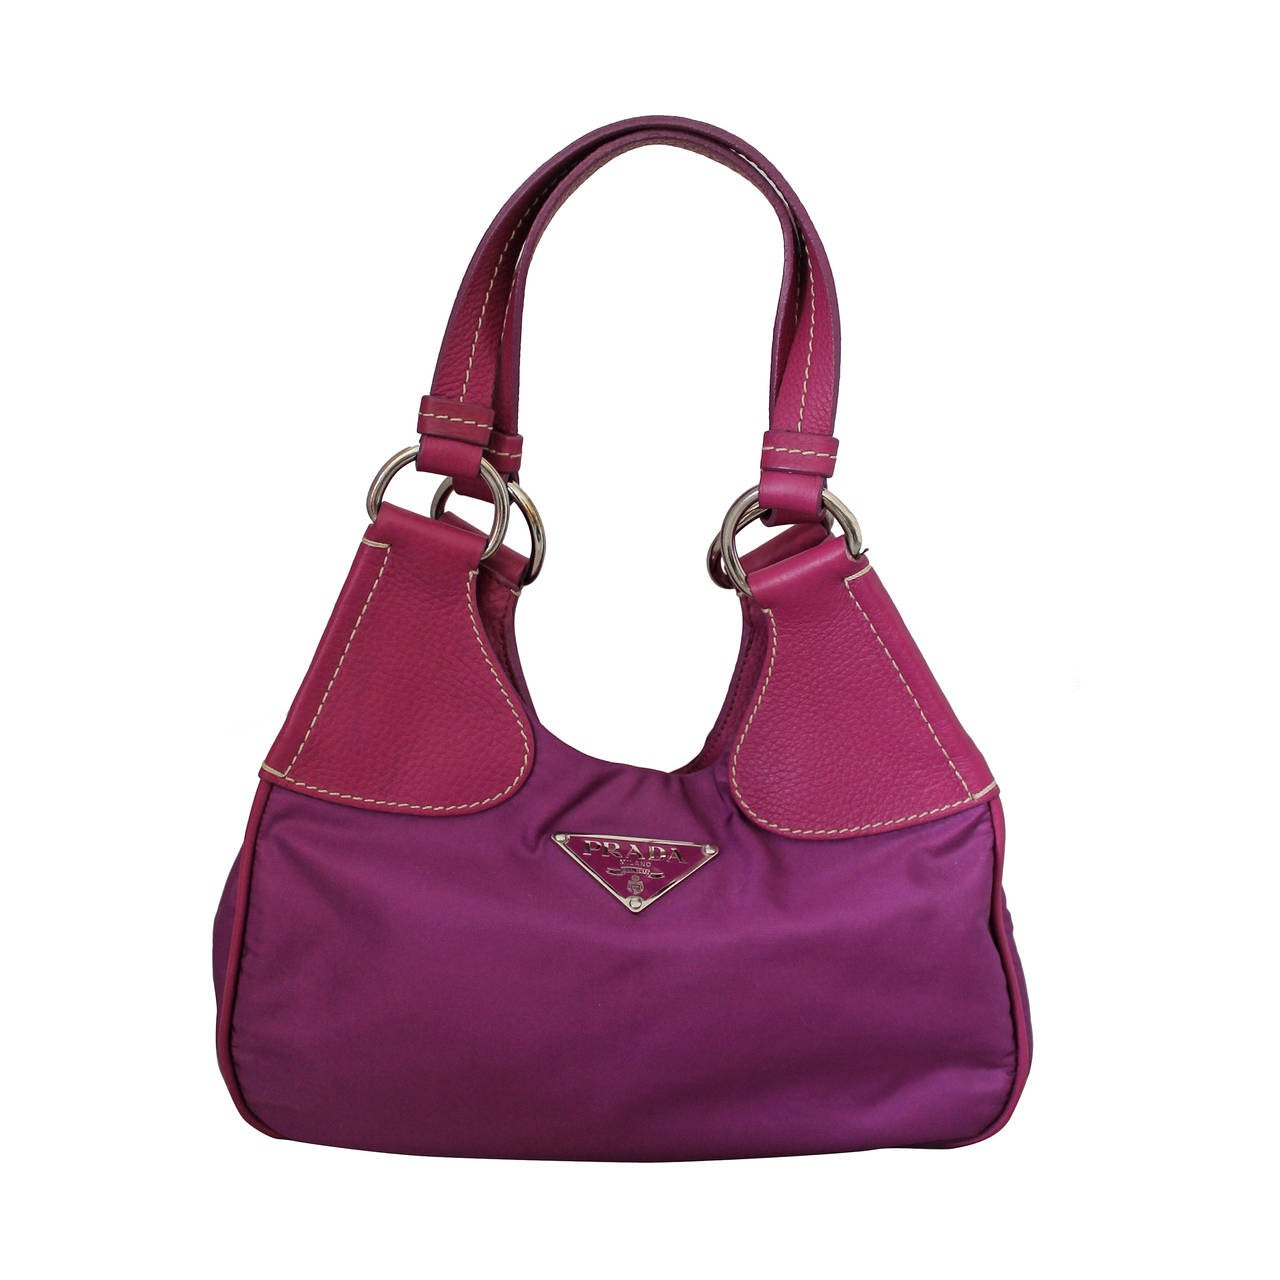 Prada Magenta Fabric & Leather Handbag 1